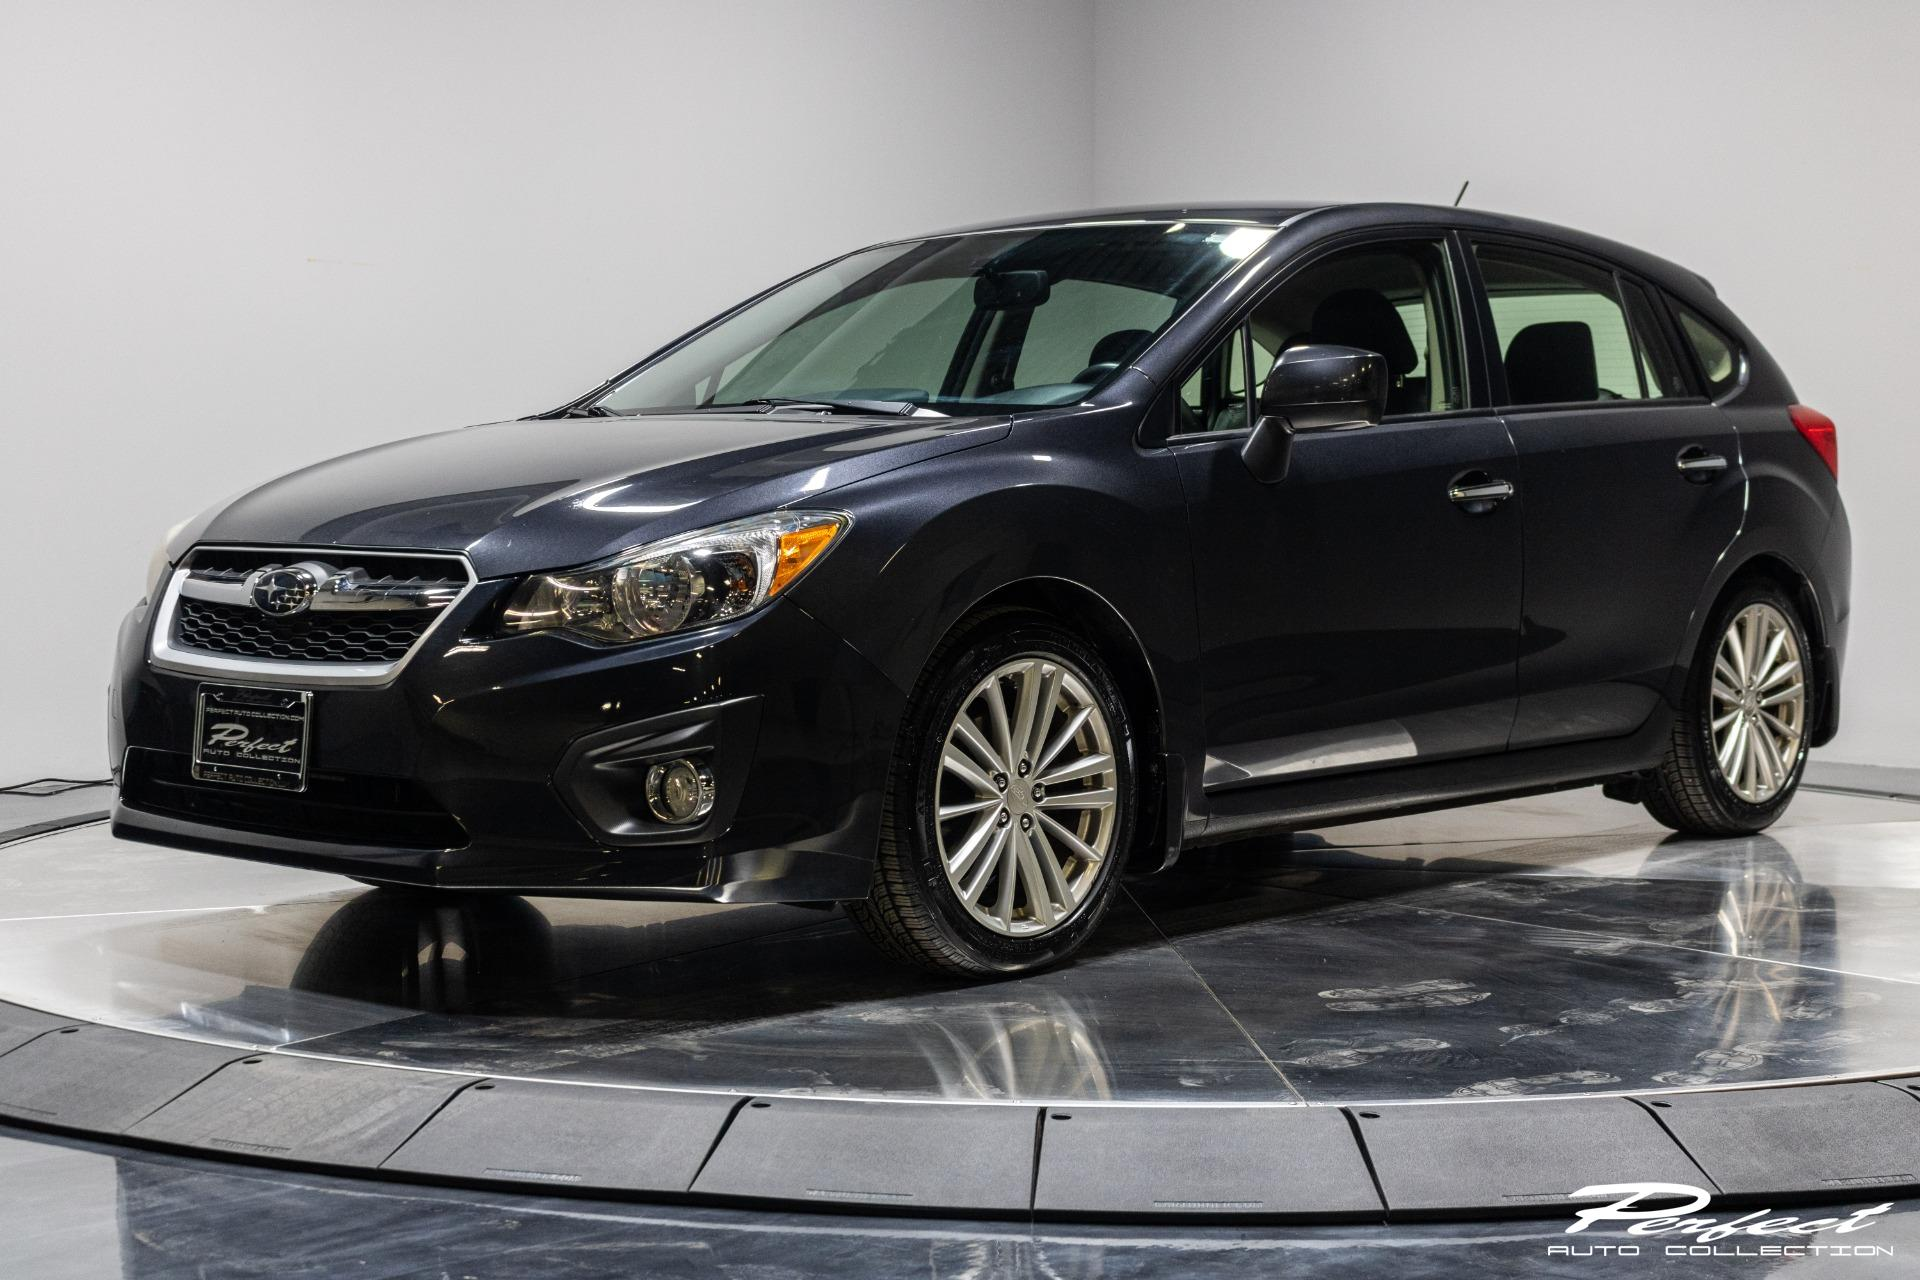 Used 2014 Subaru Impreza 2.0i Limited for sale Sold at Perfect Auto Collection in Akron OH 44310 1